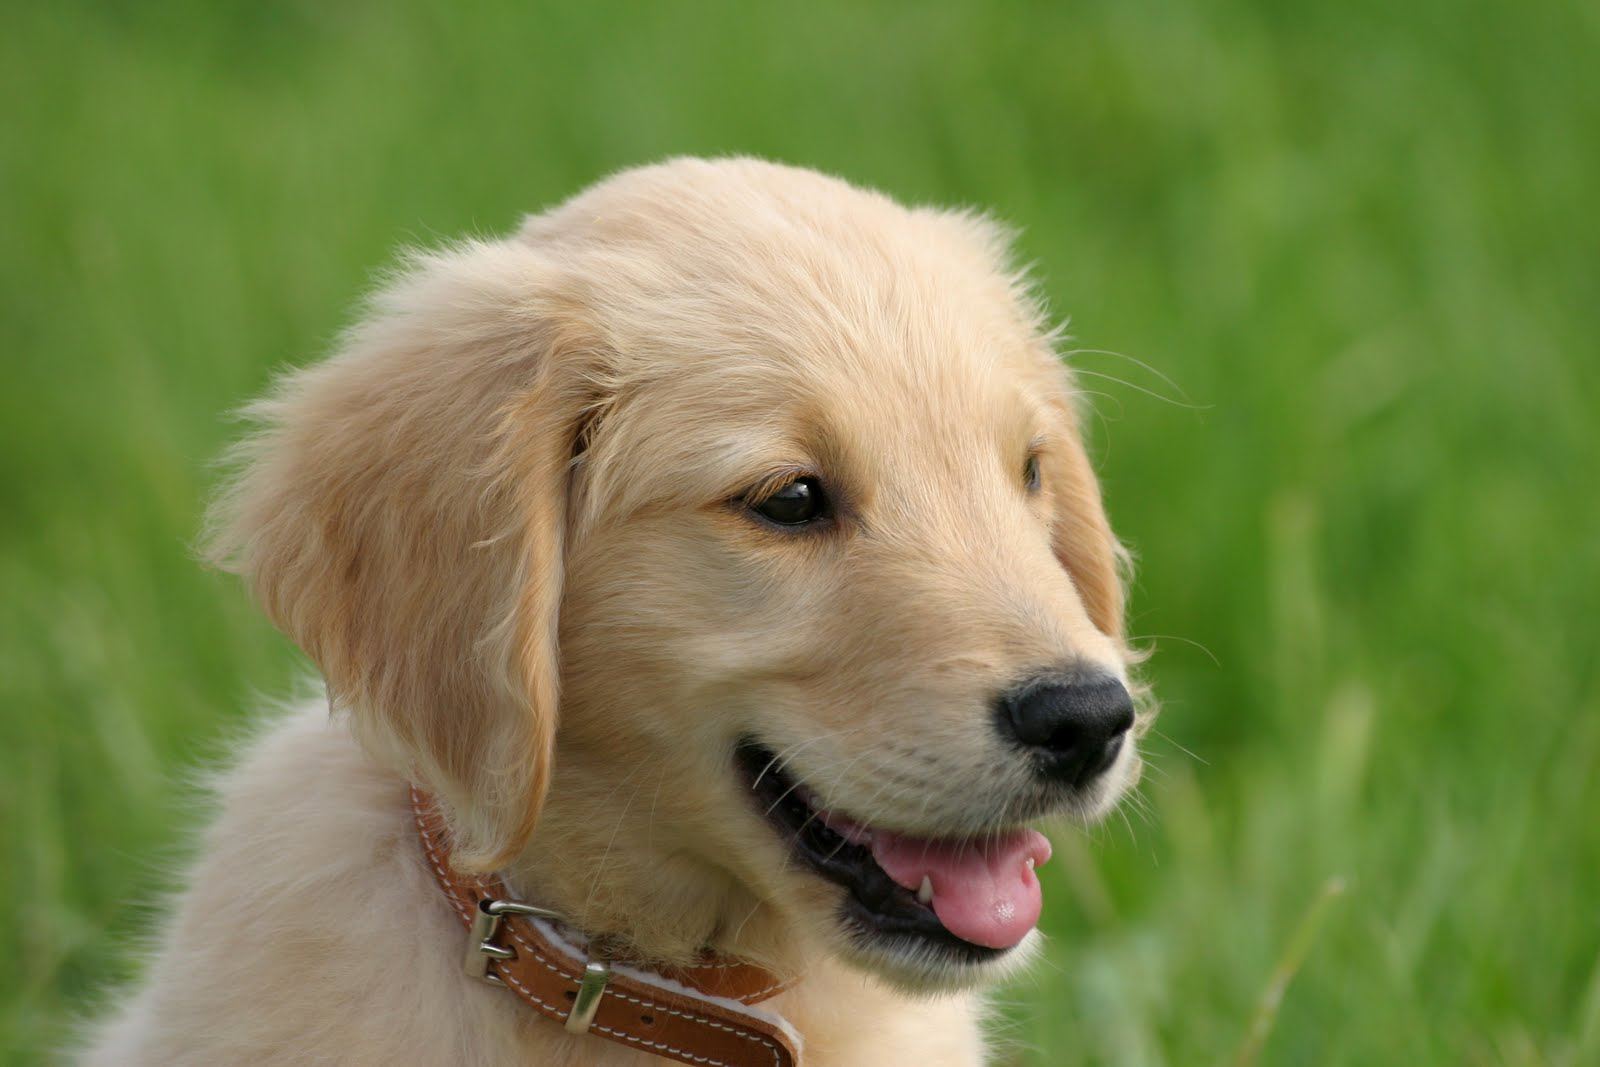 Friendly Puppy Pictures